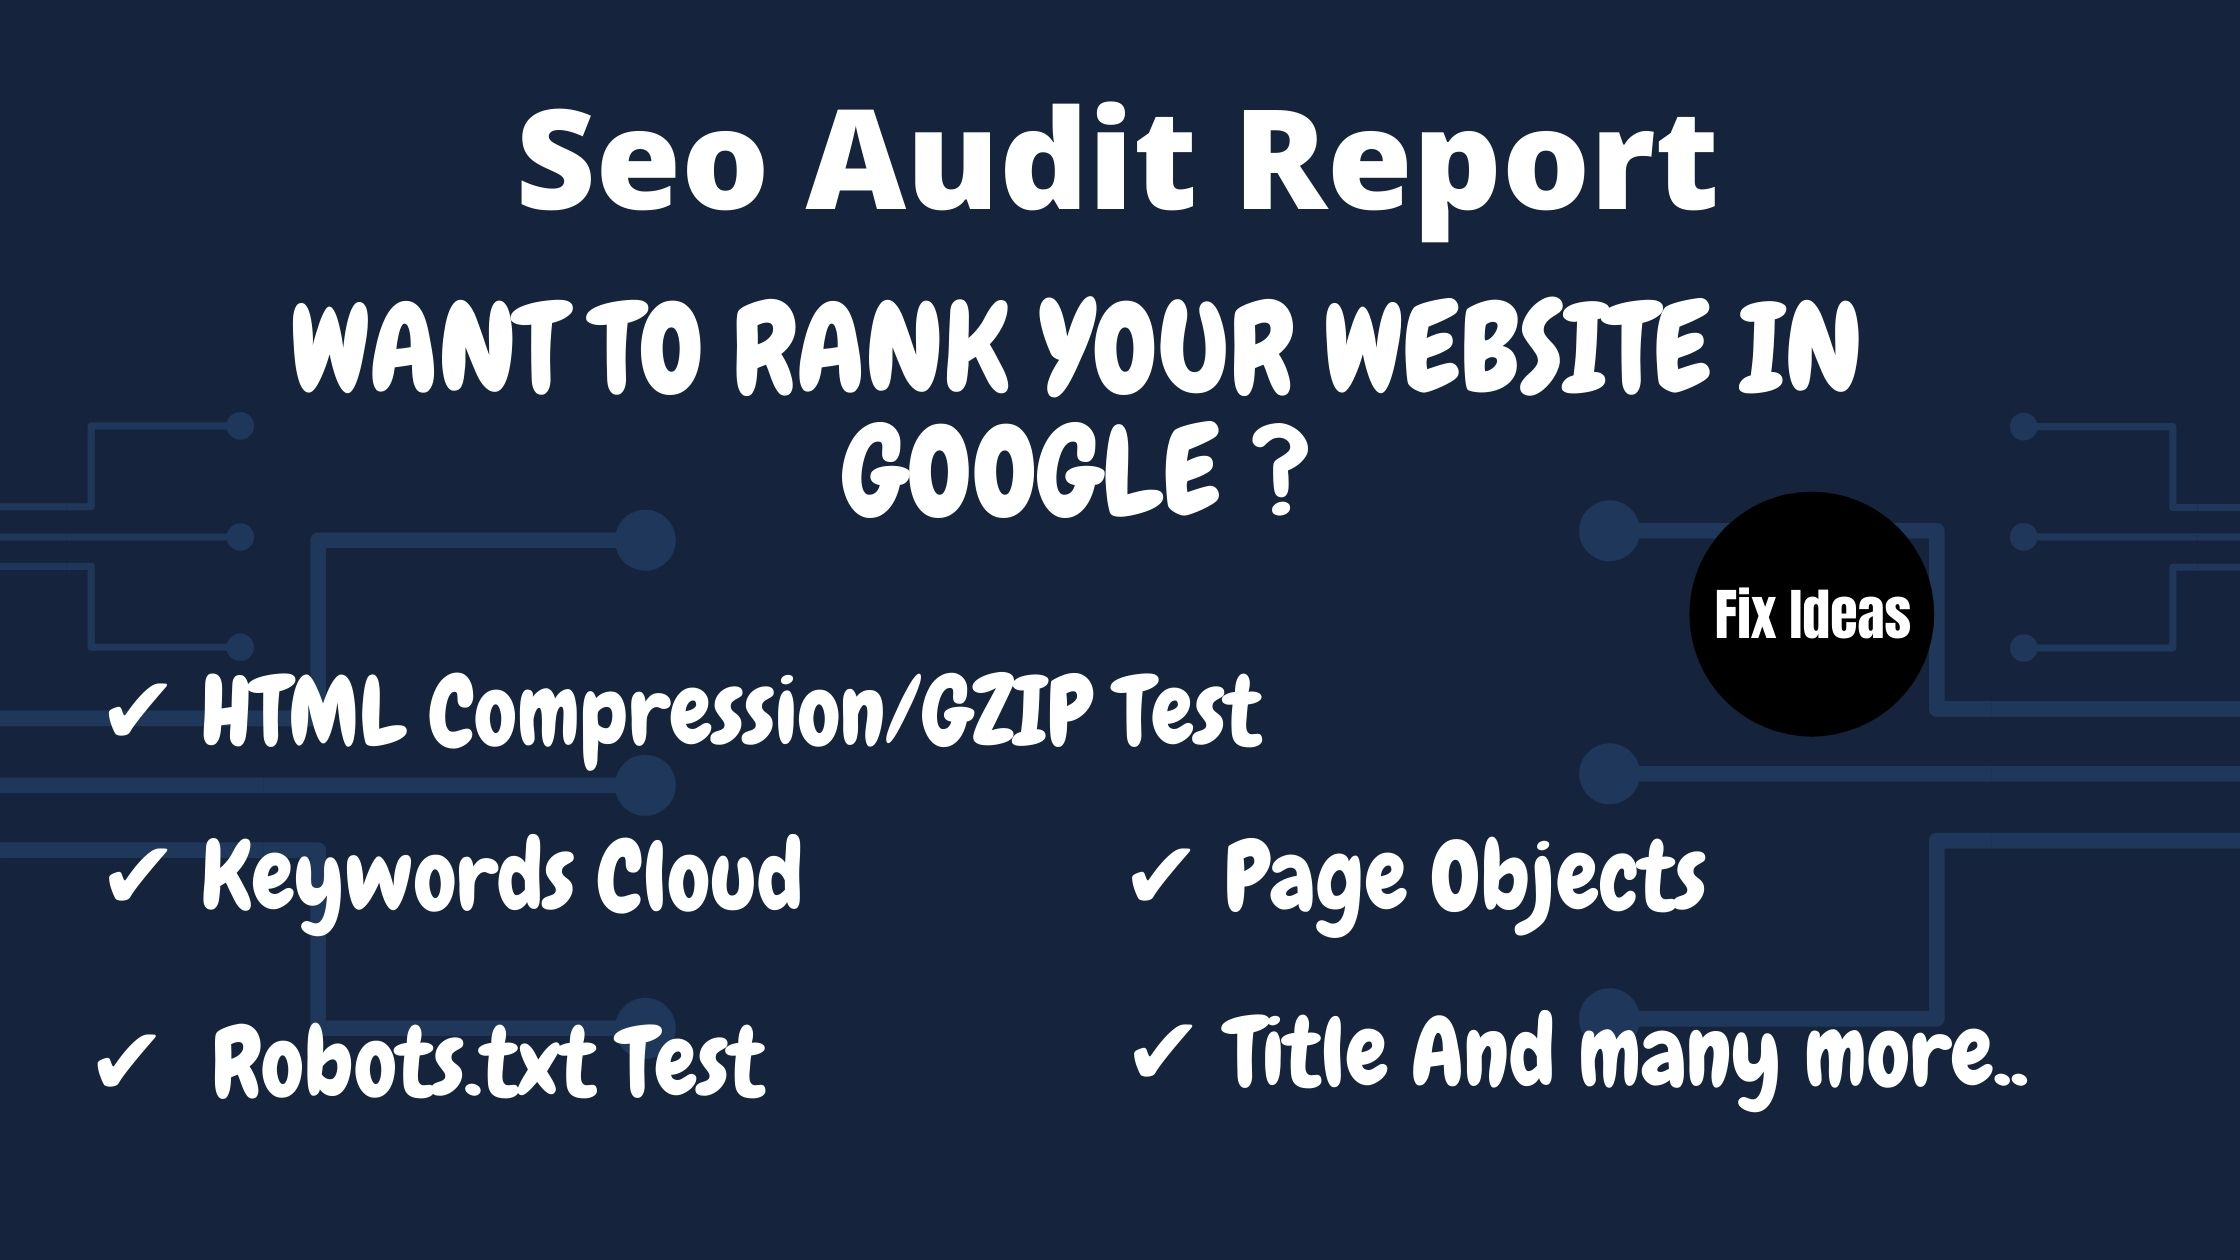 Review Website and provide a detailed SEO audit report